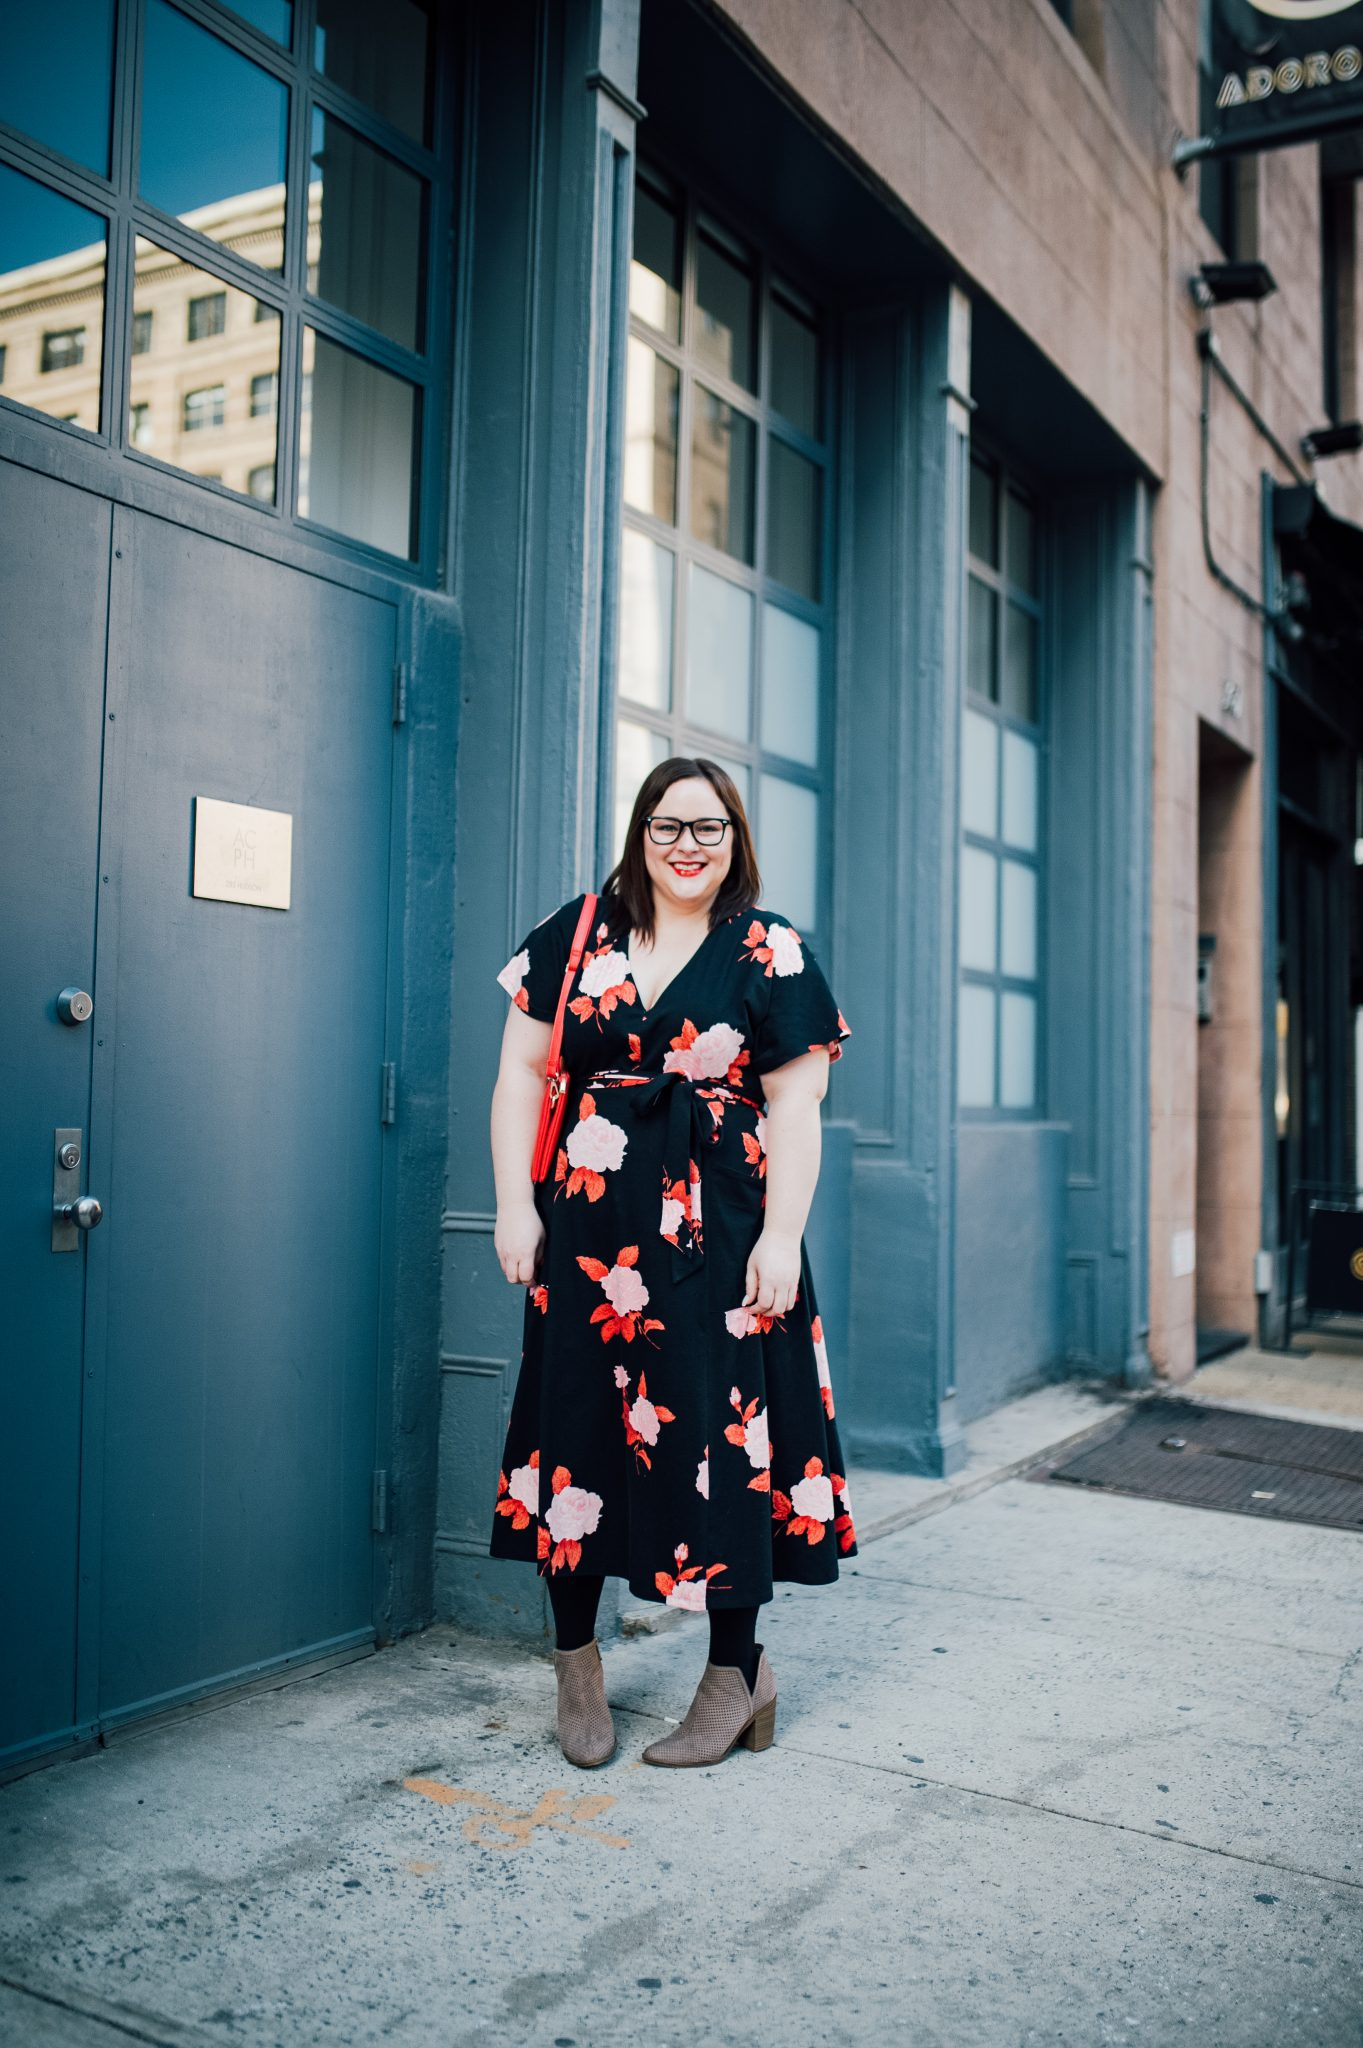 How a $33 Dress from Target Changed My Life